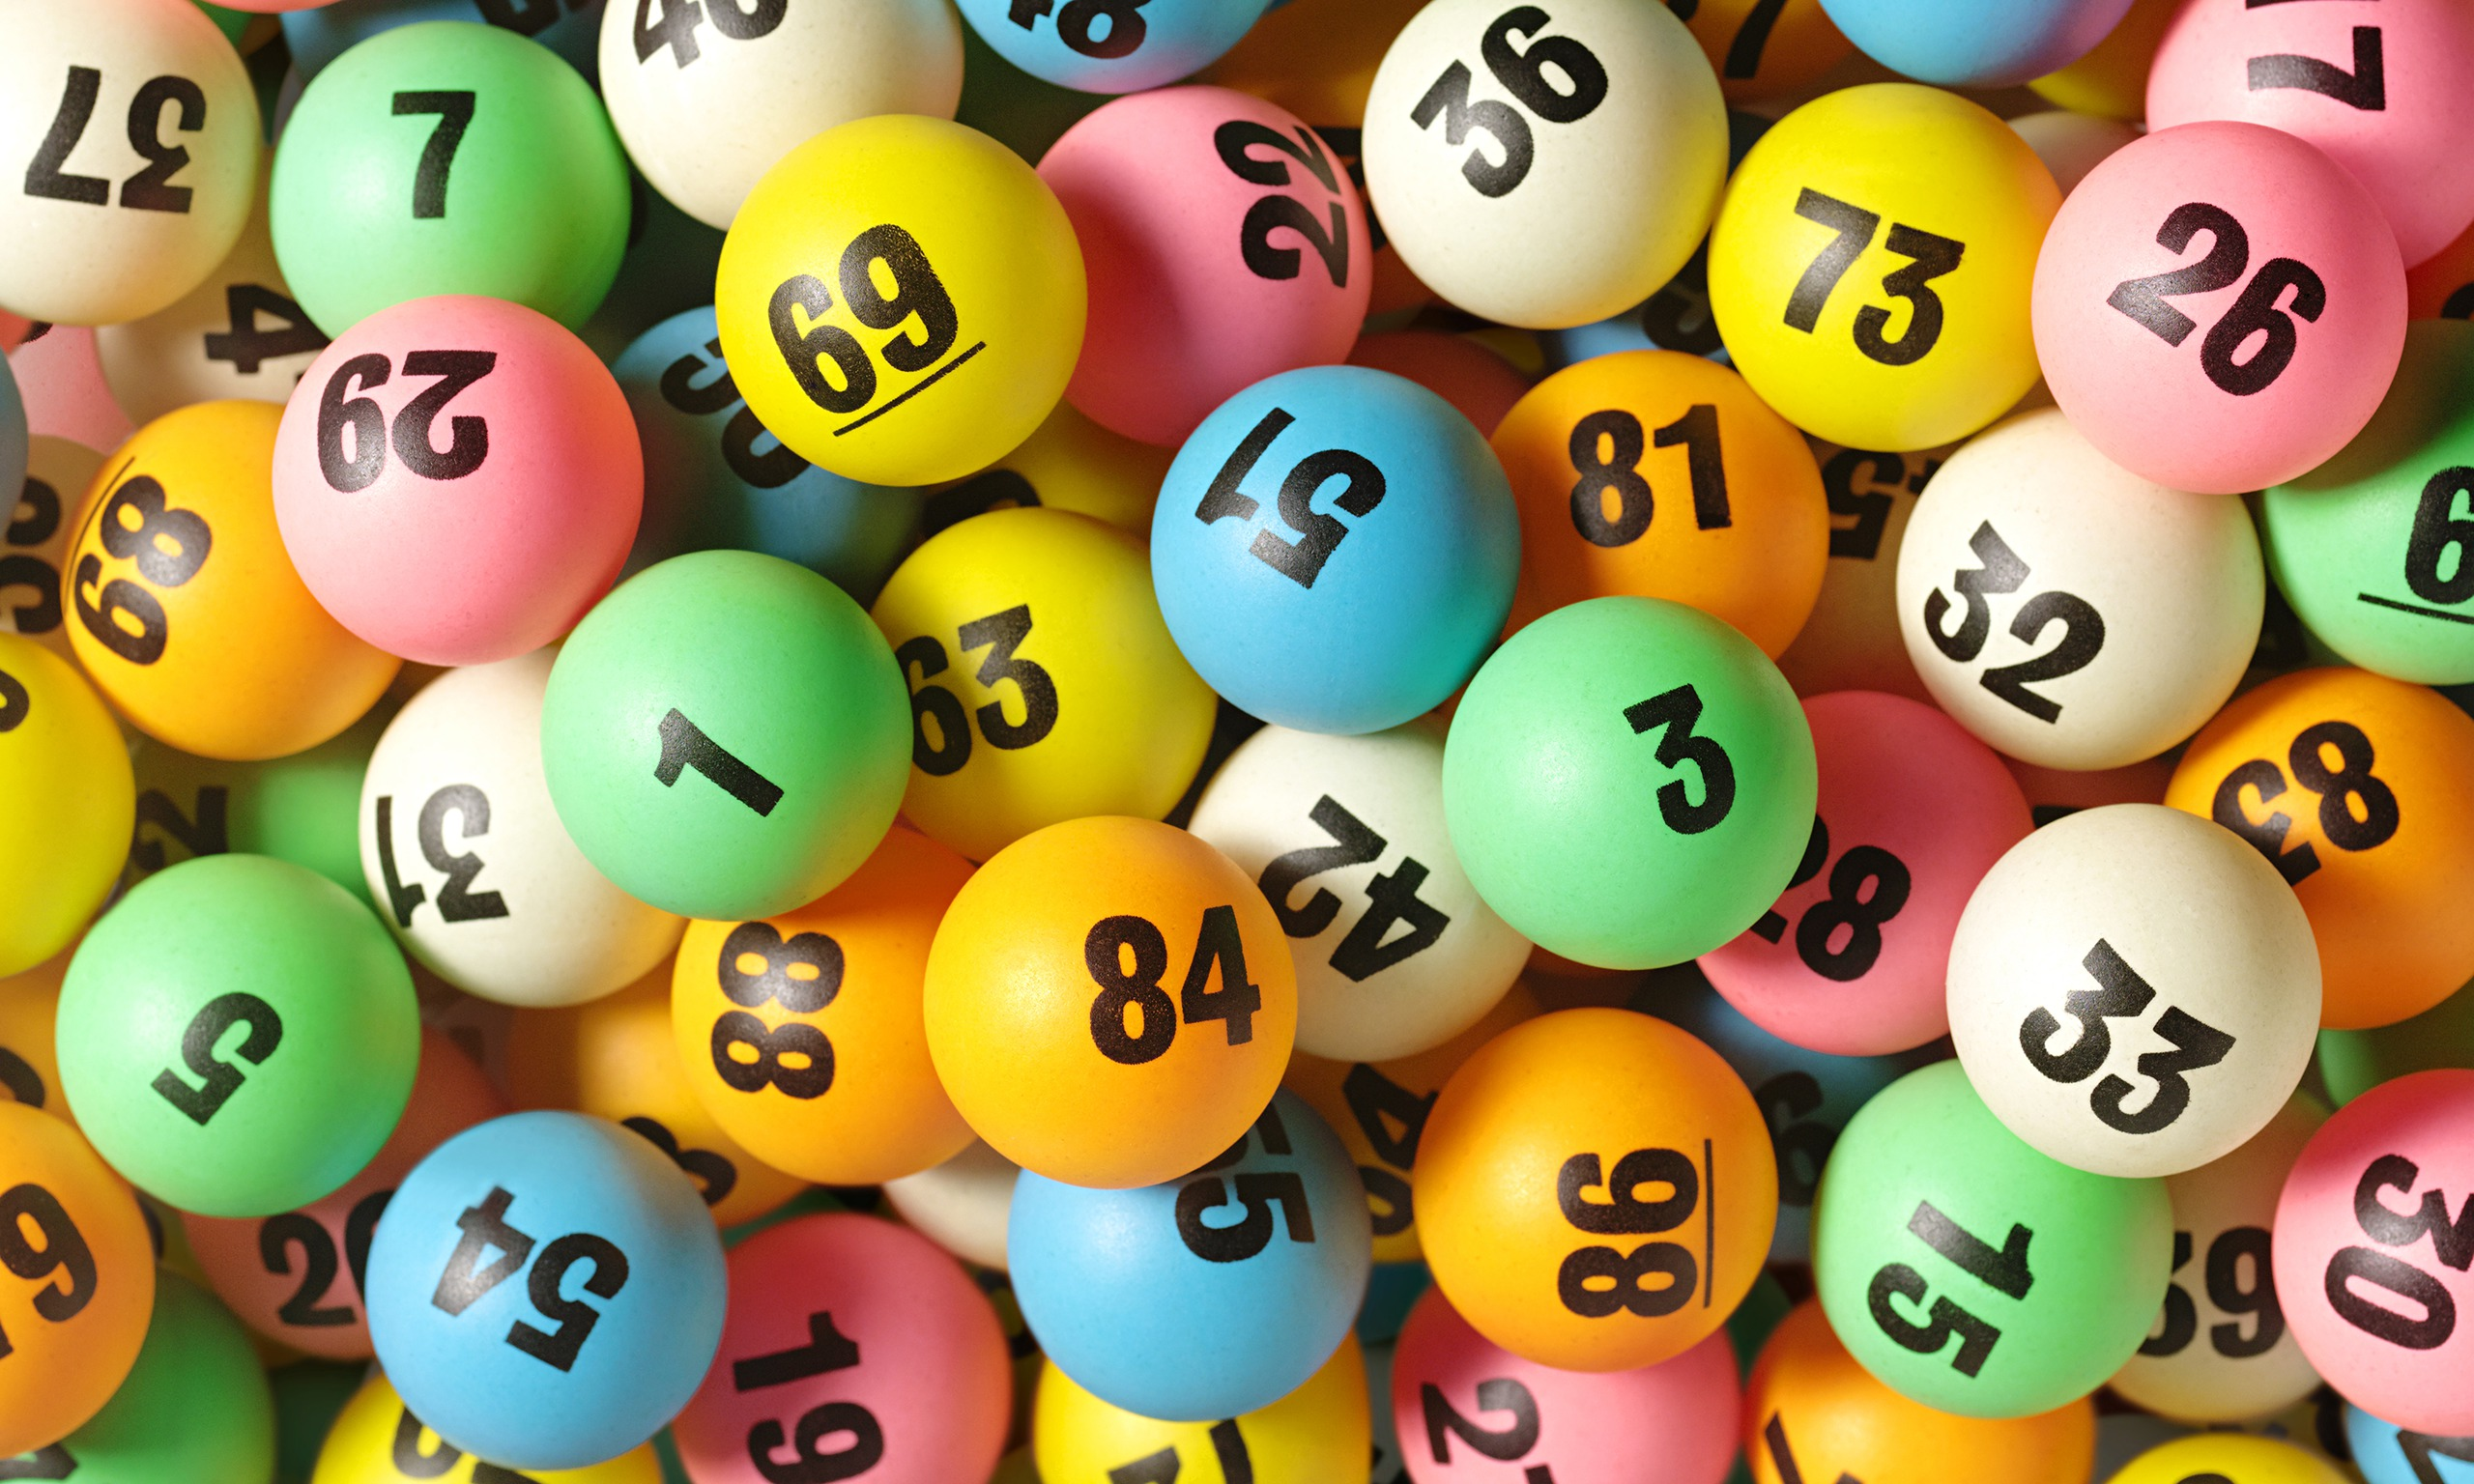 Who owns Camelot, the National Lottery operators?